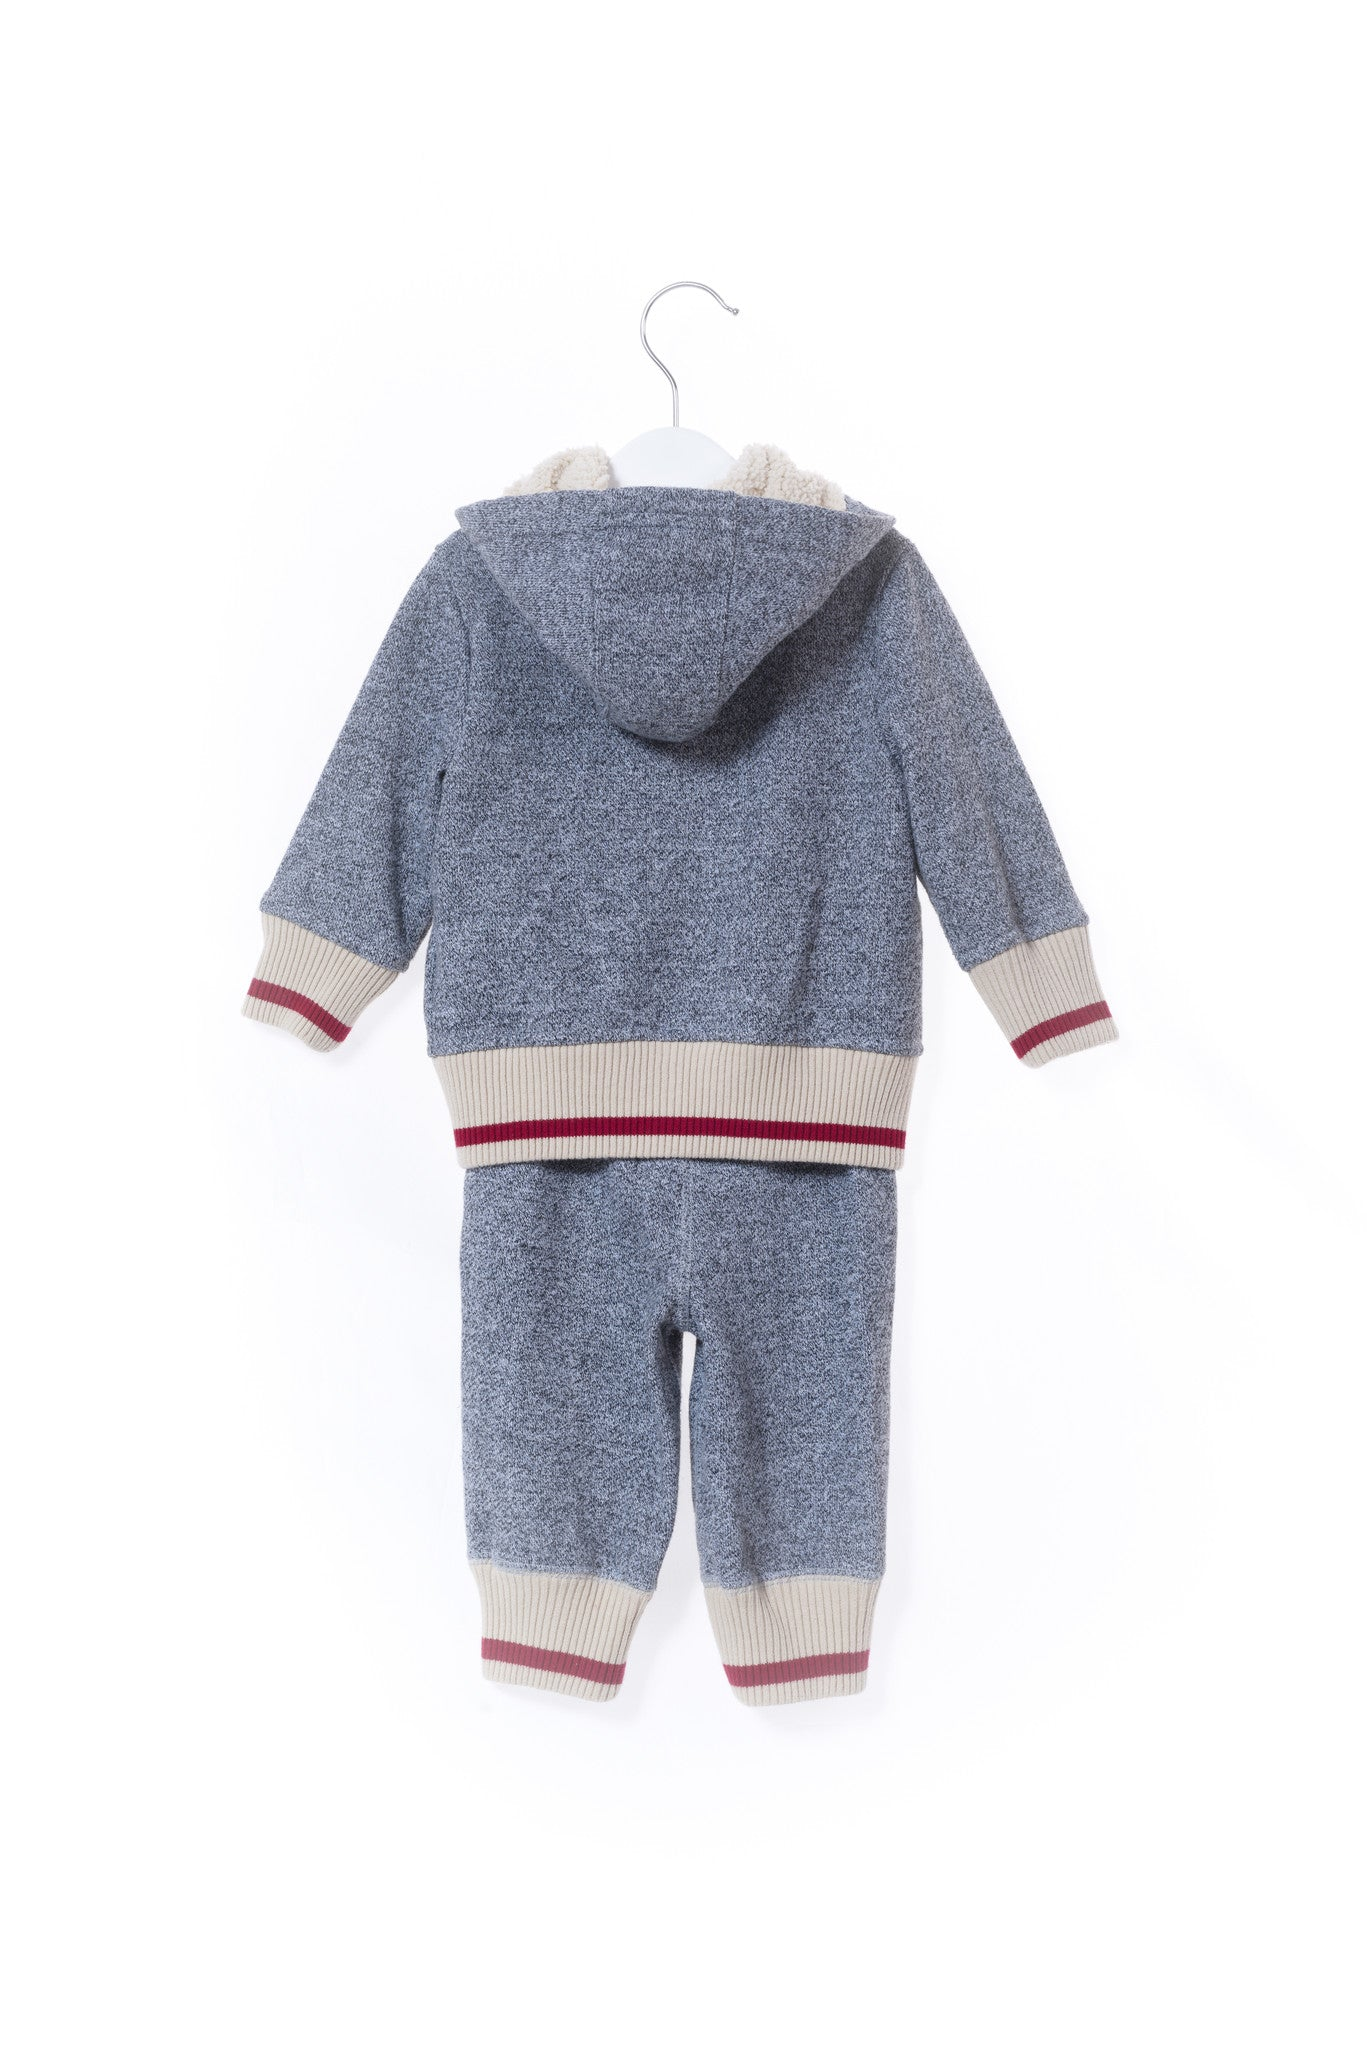 10001050 Roots Baby~Sweatshirt and Pants 3-6M at Retykle